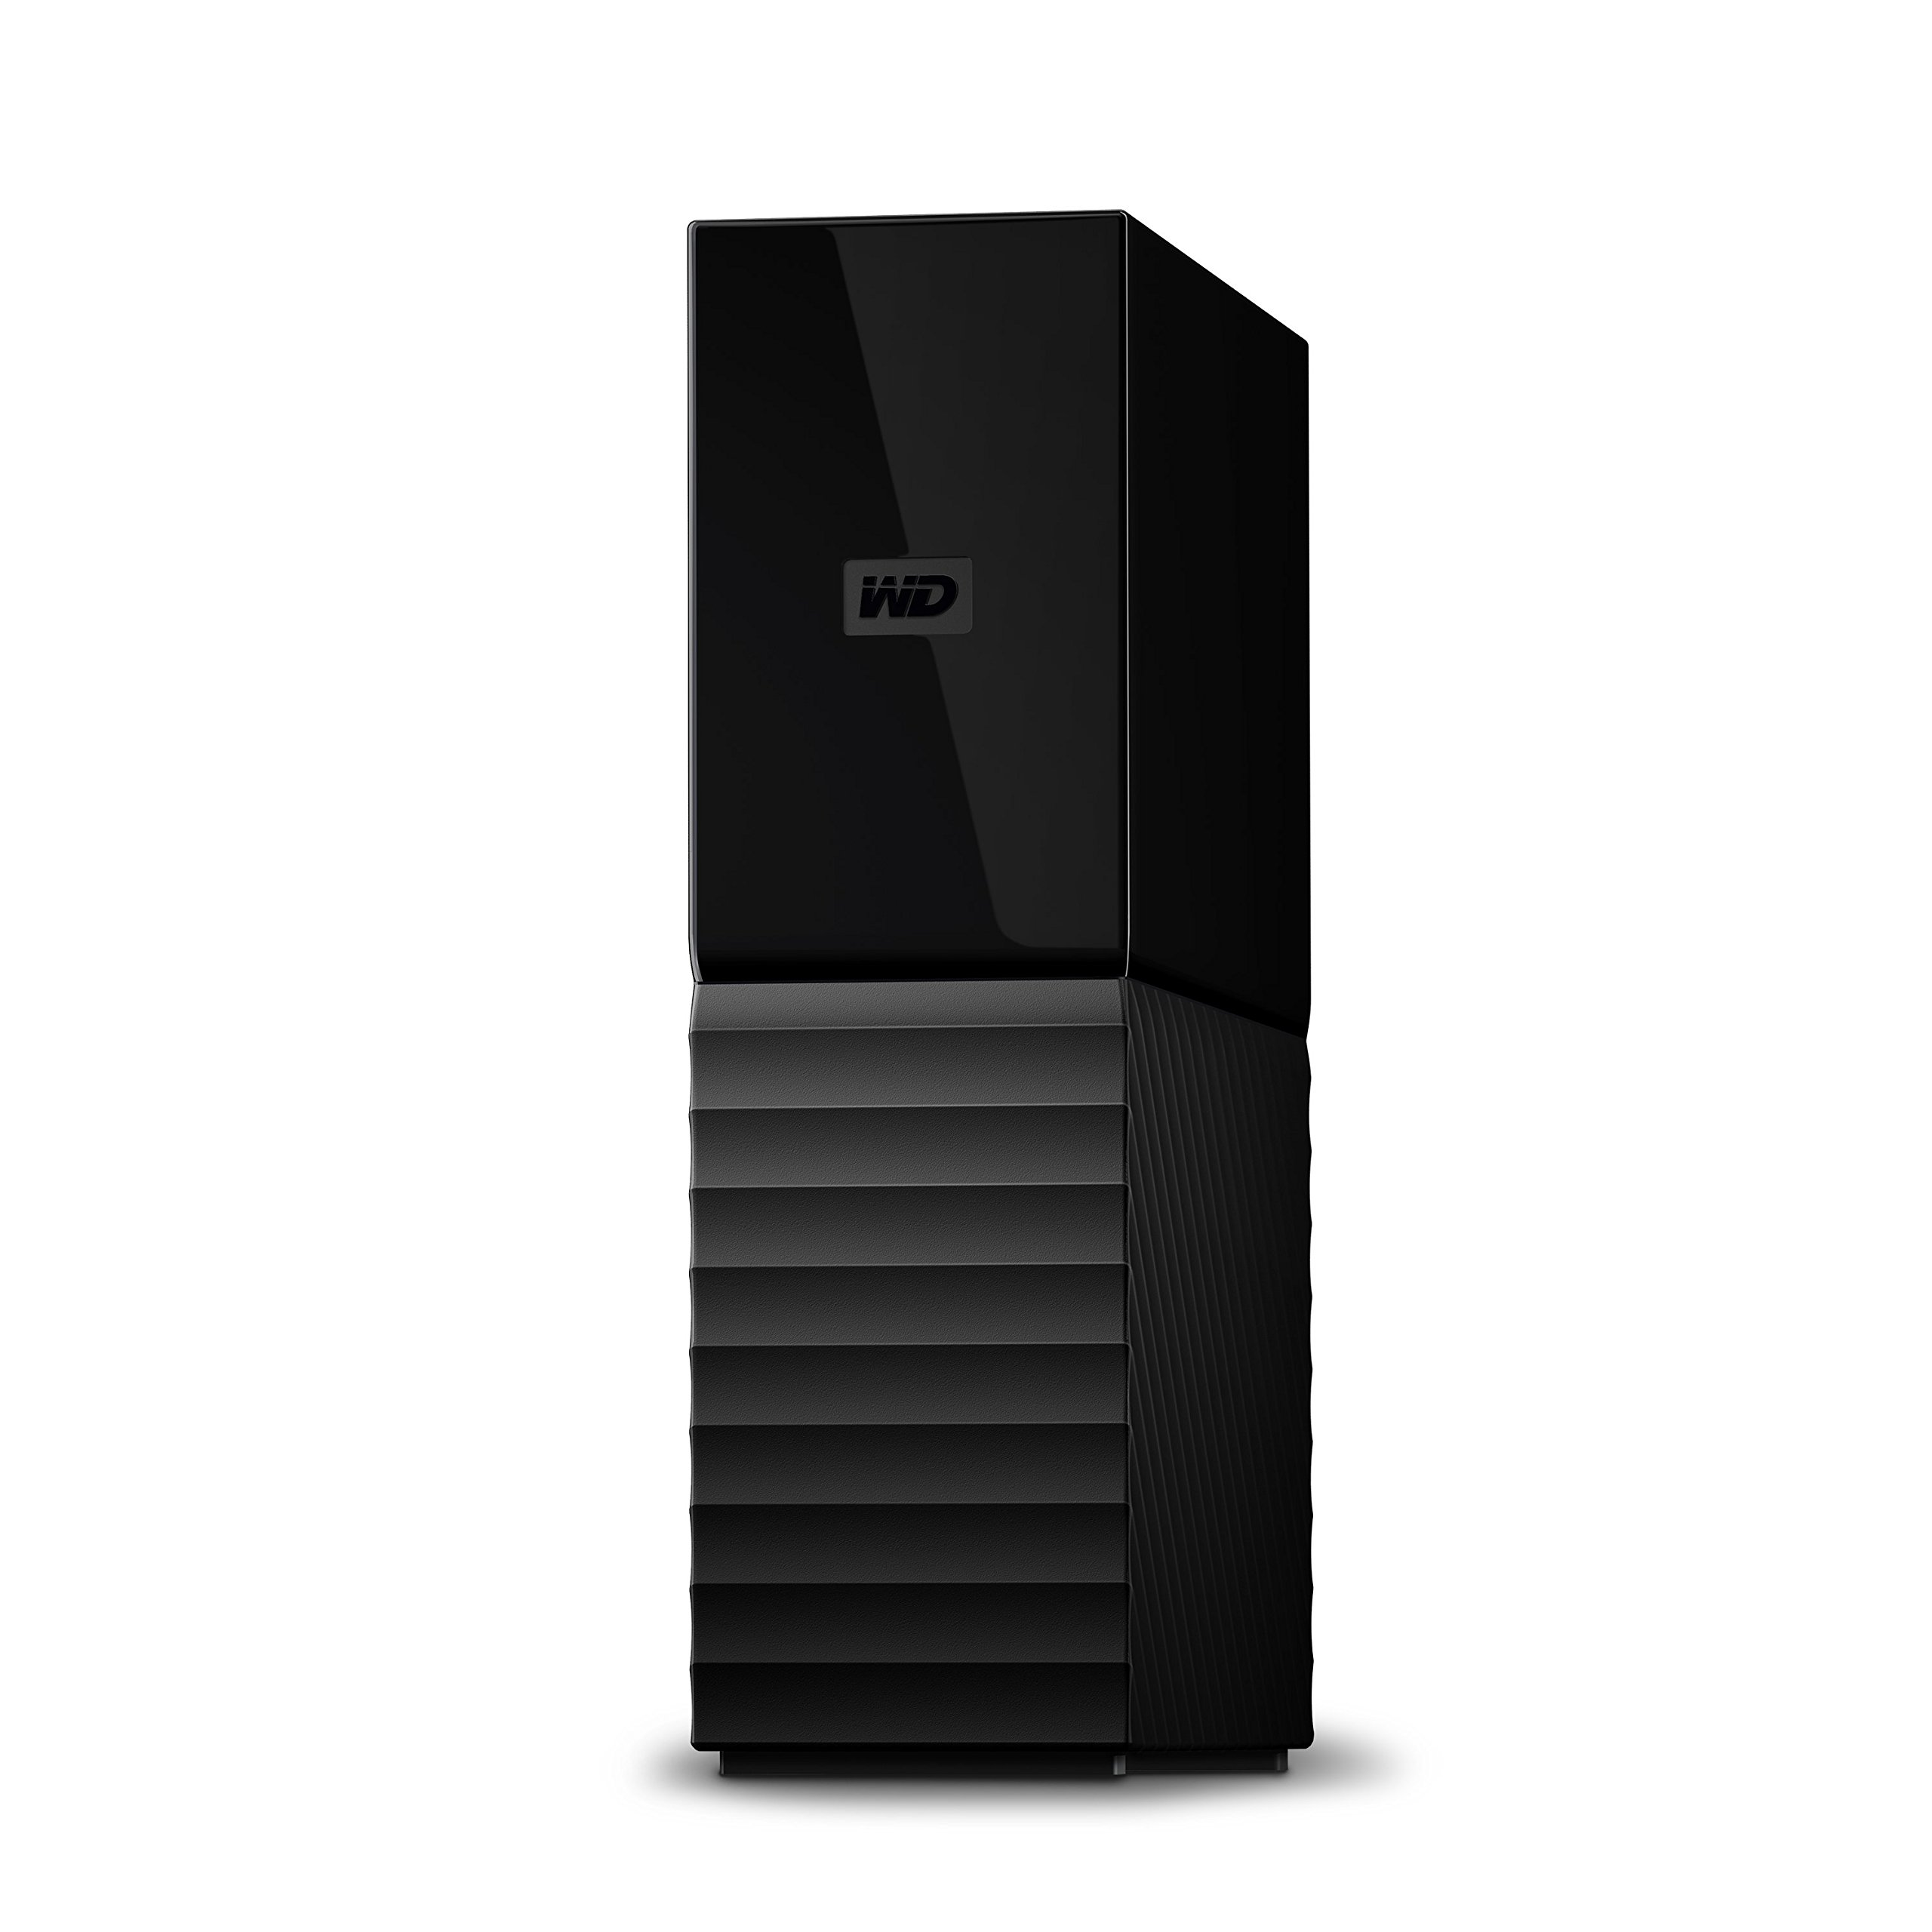 WD 4TB My Book Desktop External Hard Drive - USB 3.0 - WDBBGB0040HBK-NESN